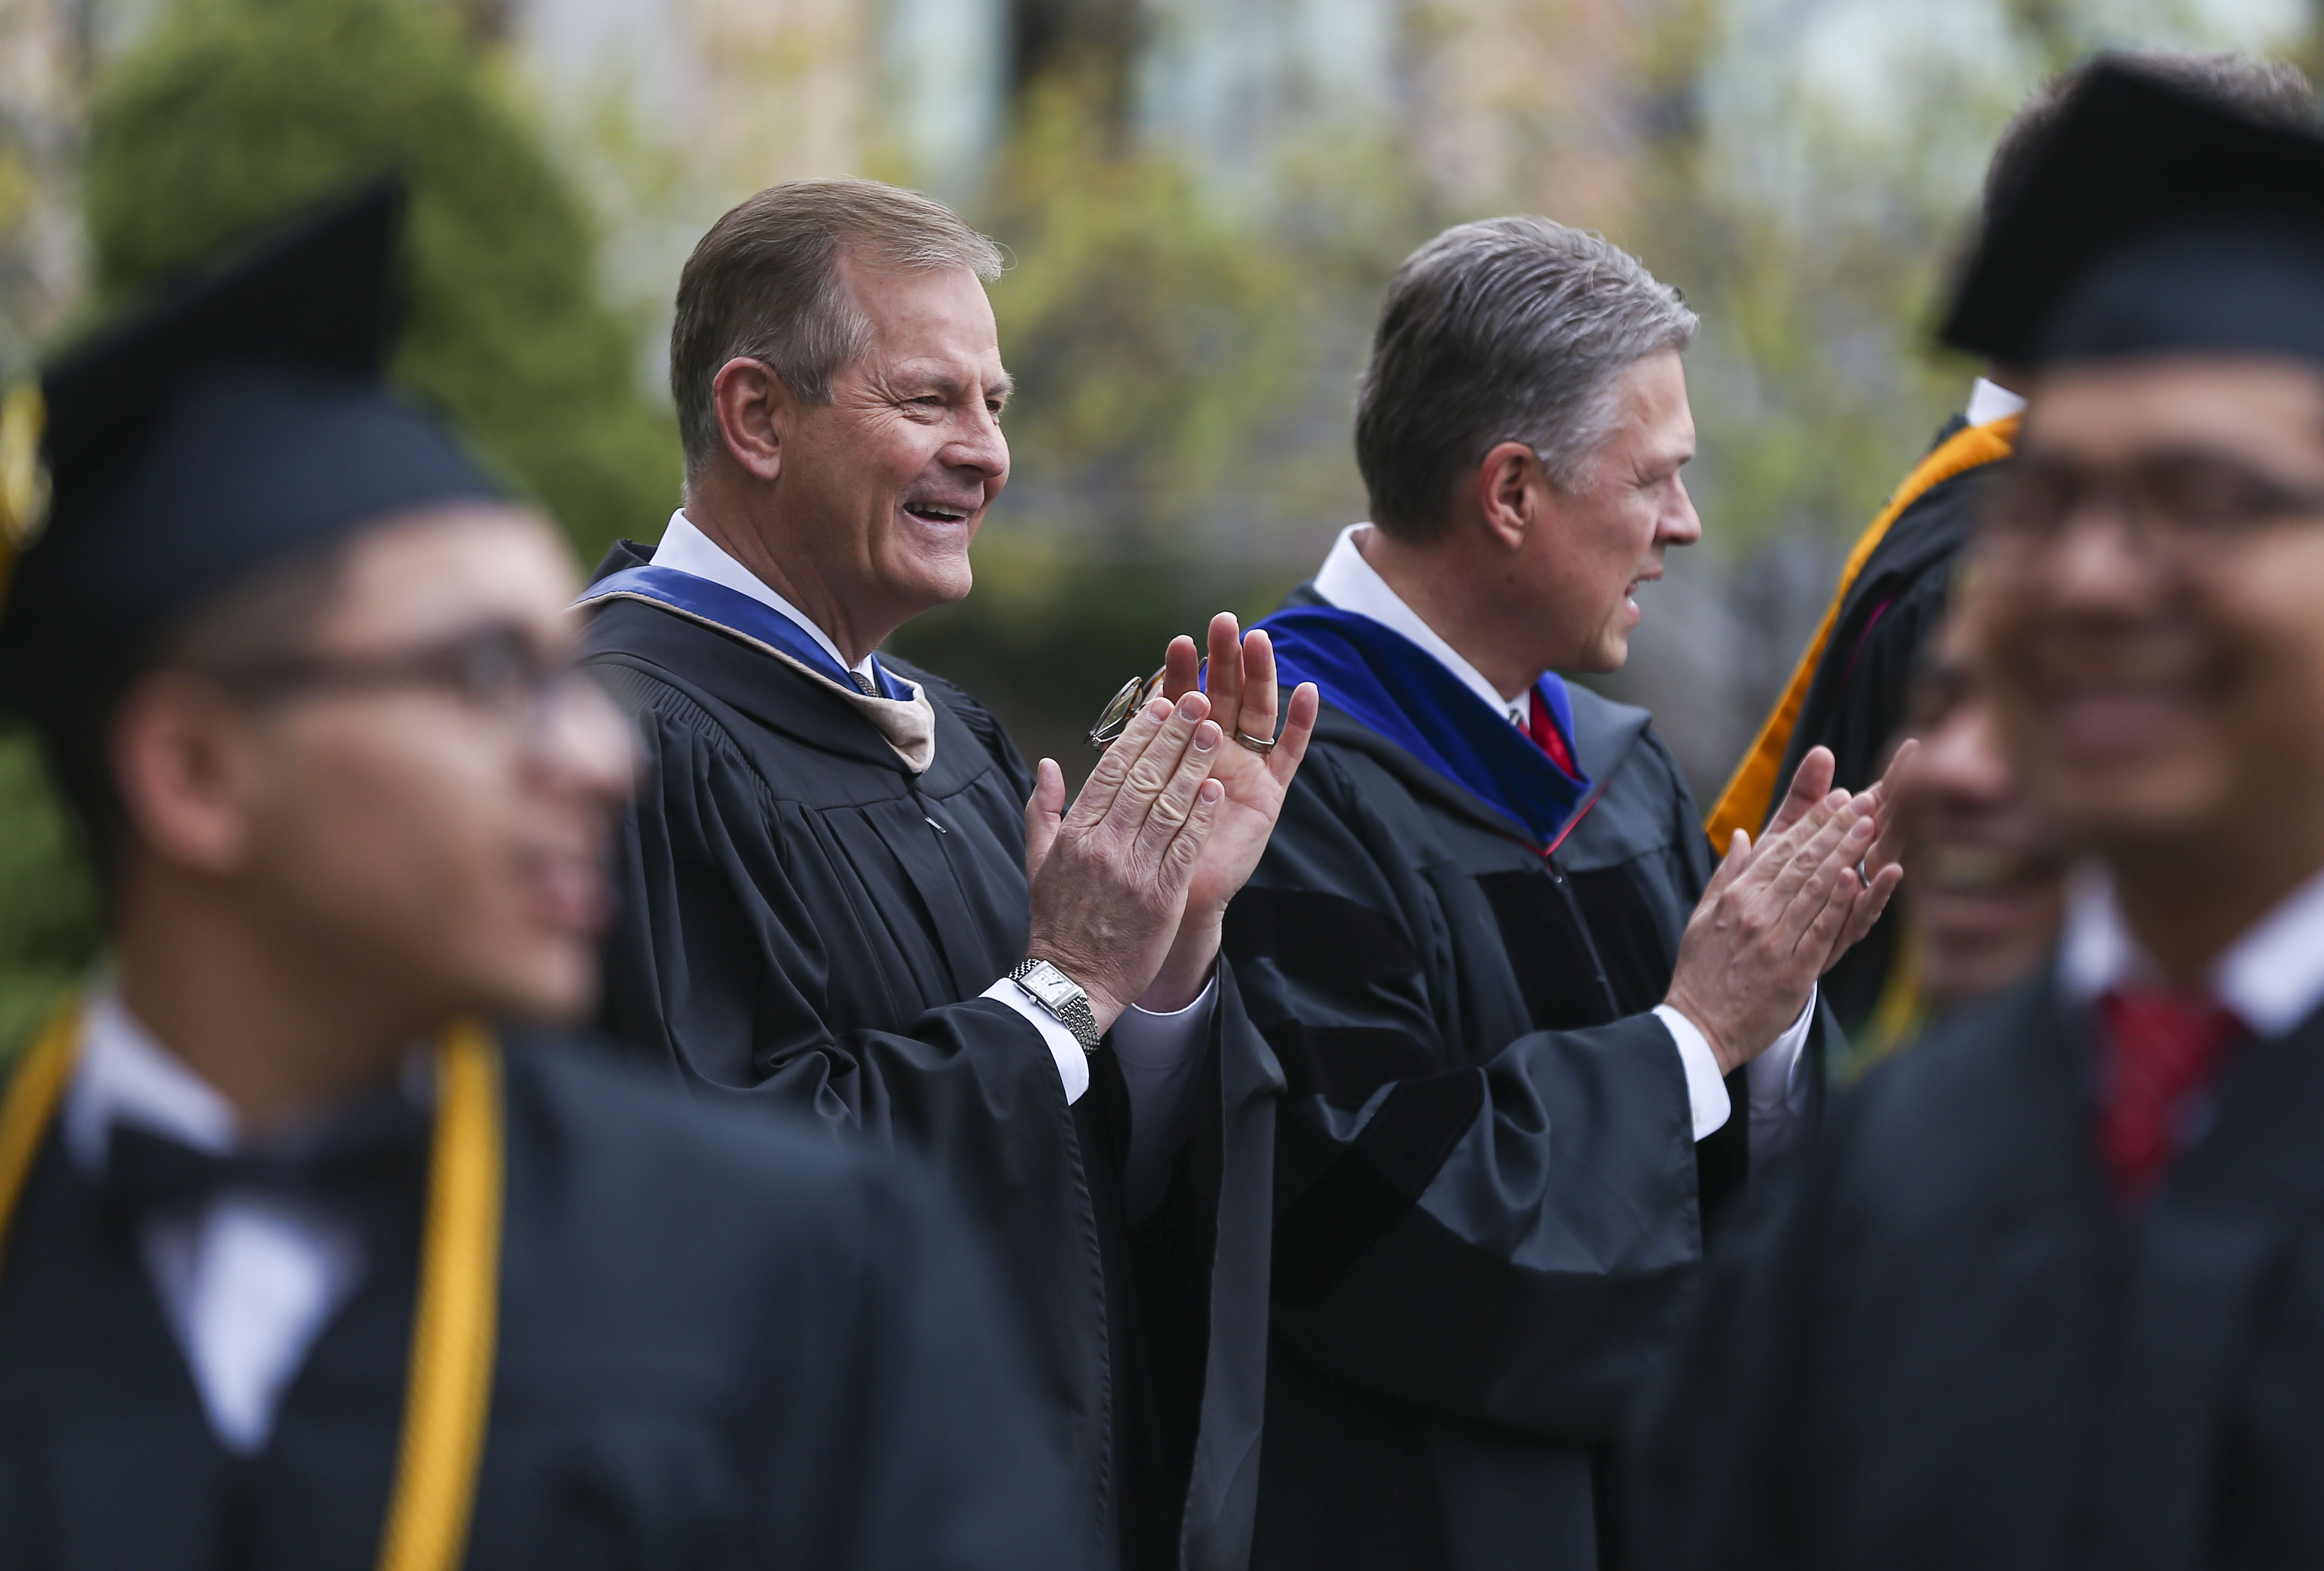 Elder Gary E. Stevenson of the Quorum of the Twelve Apostles greets students arriving for the commencement ceremony for the LDS Business College at the Tabernacle at Temple Square in Salt Lake City on Friday, April 12, 2019.